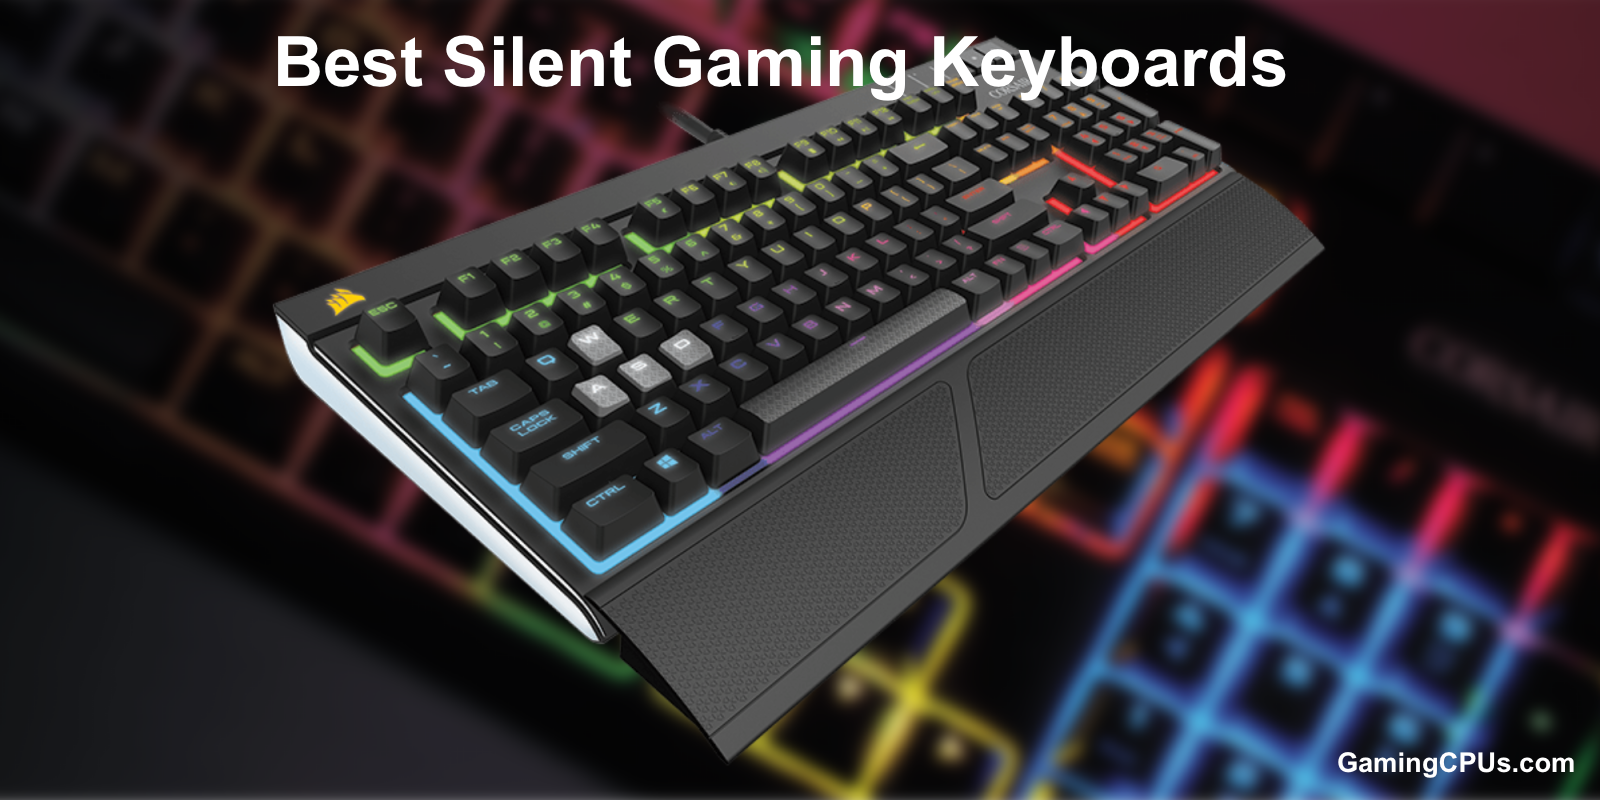 Best Wireless Keyboard 2020.Top 6 Best Silent Gaming Keyboards 2020 Buyer S Guide